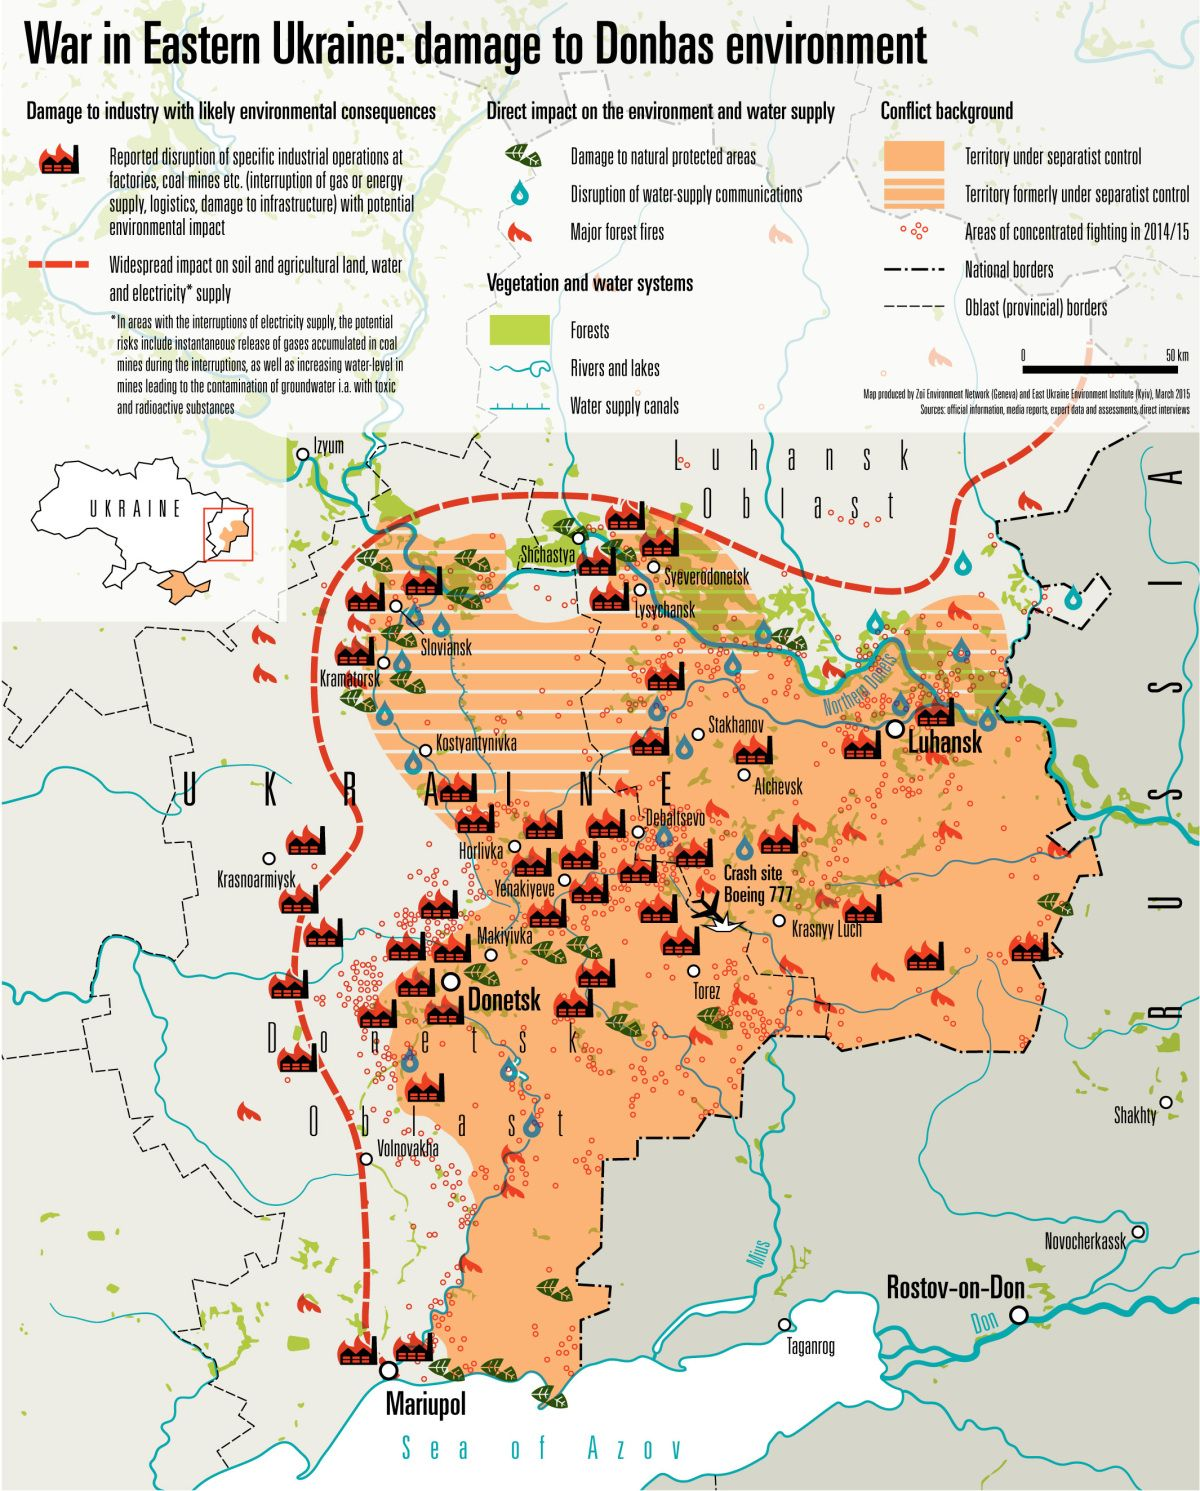 Damage to Donbas environment chart by Sustainable Security 2015